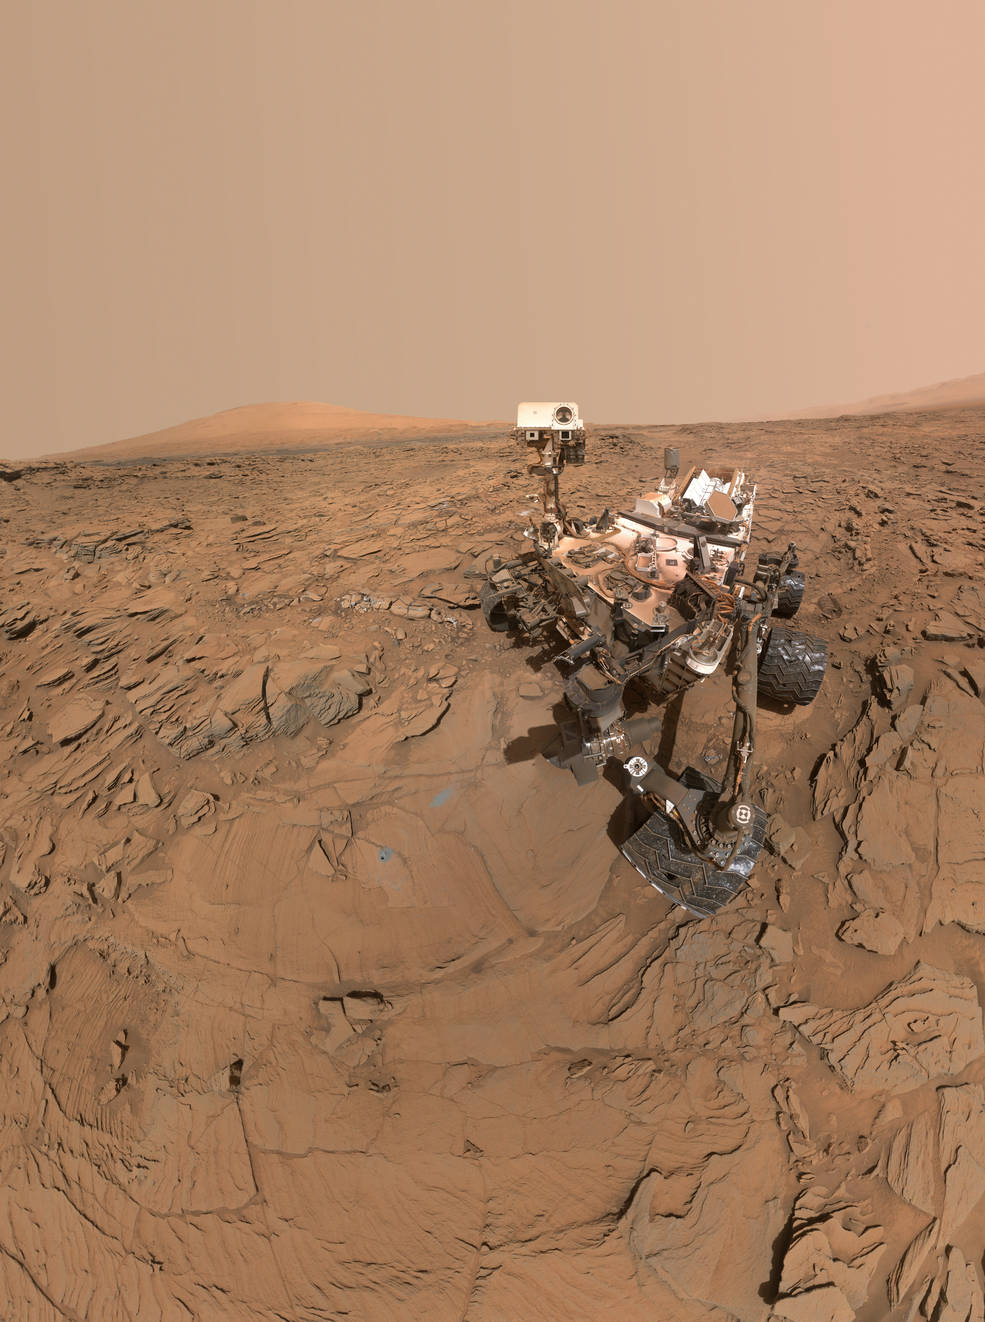 Will NASA Send Its Rover To Image Potential Mars Water Sites? (nasa.gov)